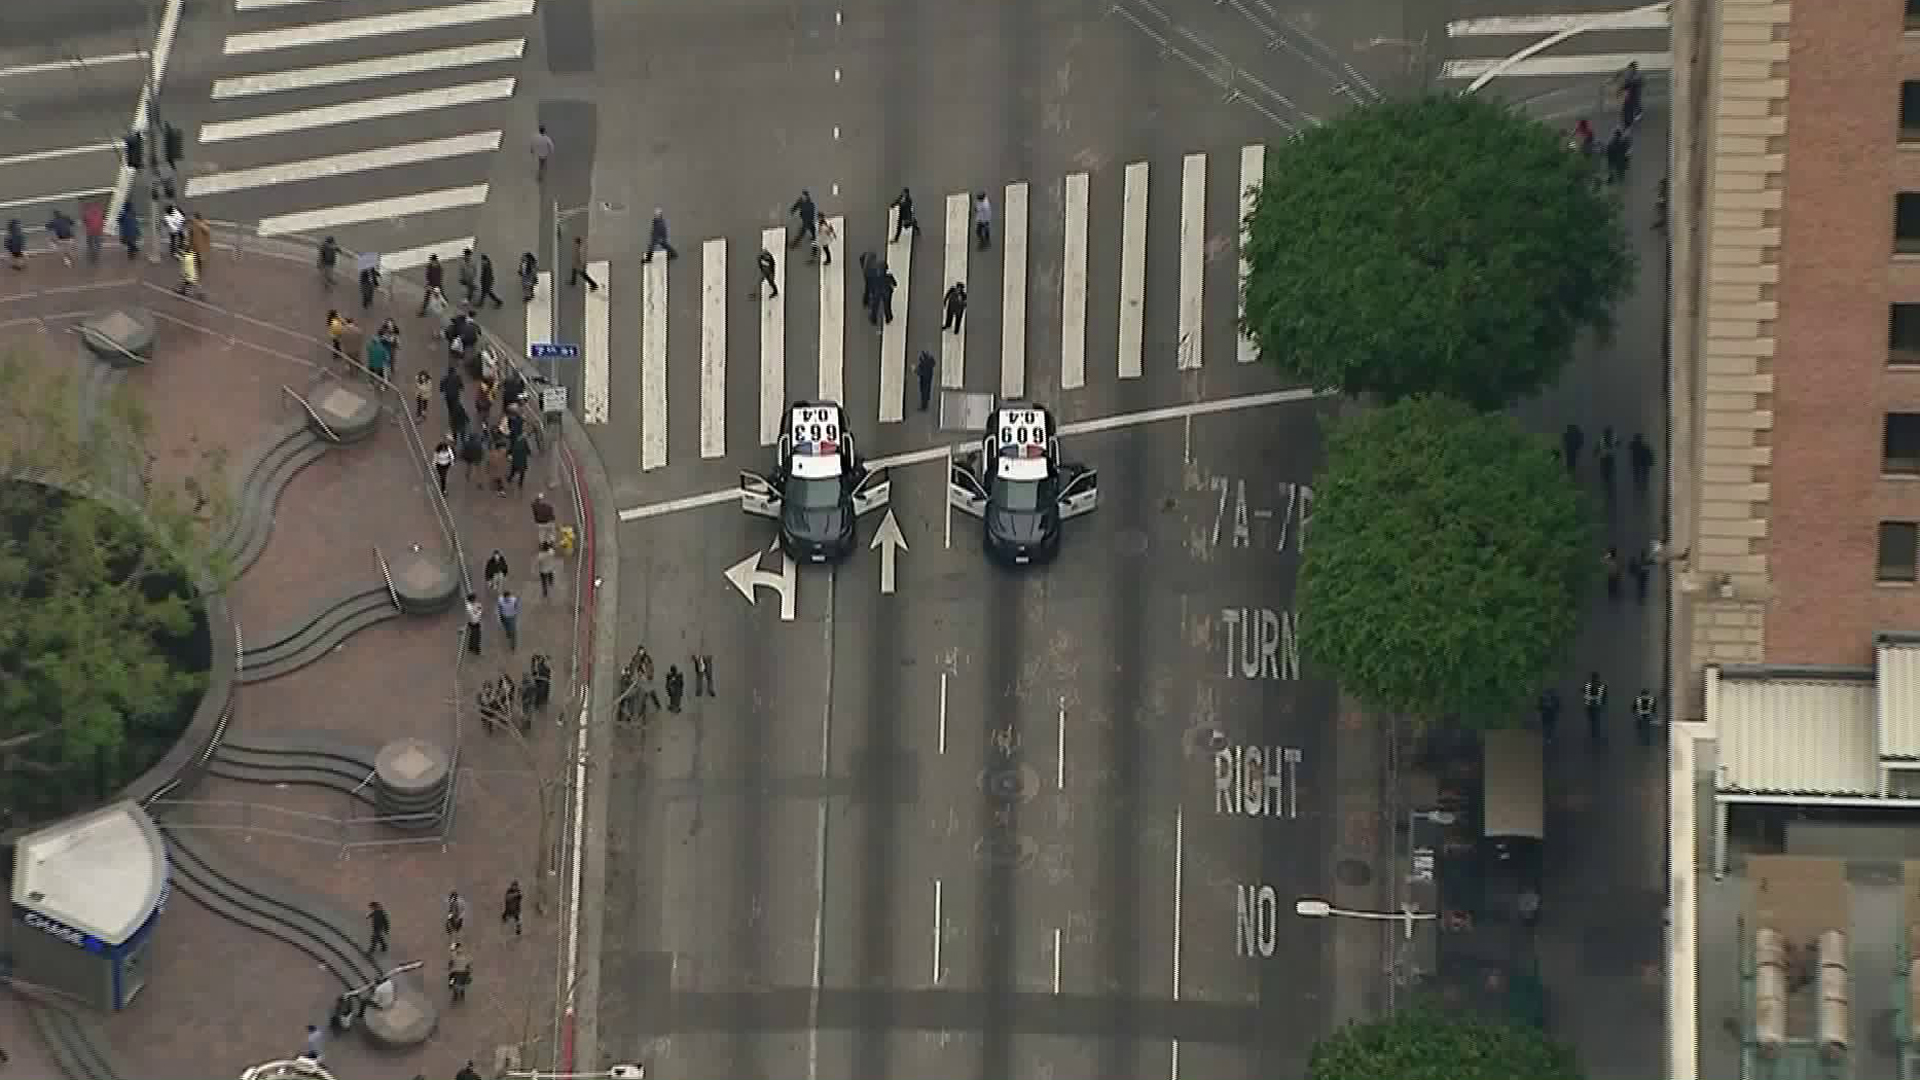 LAPD officers block traffic in downtown Los Angeles on March 13, 2018, in advance of President Trump's visit. (Credit: KTLA)